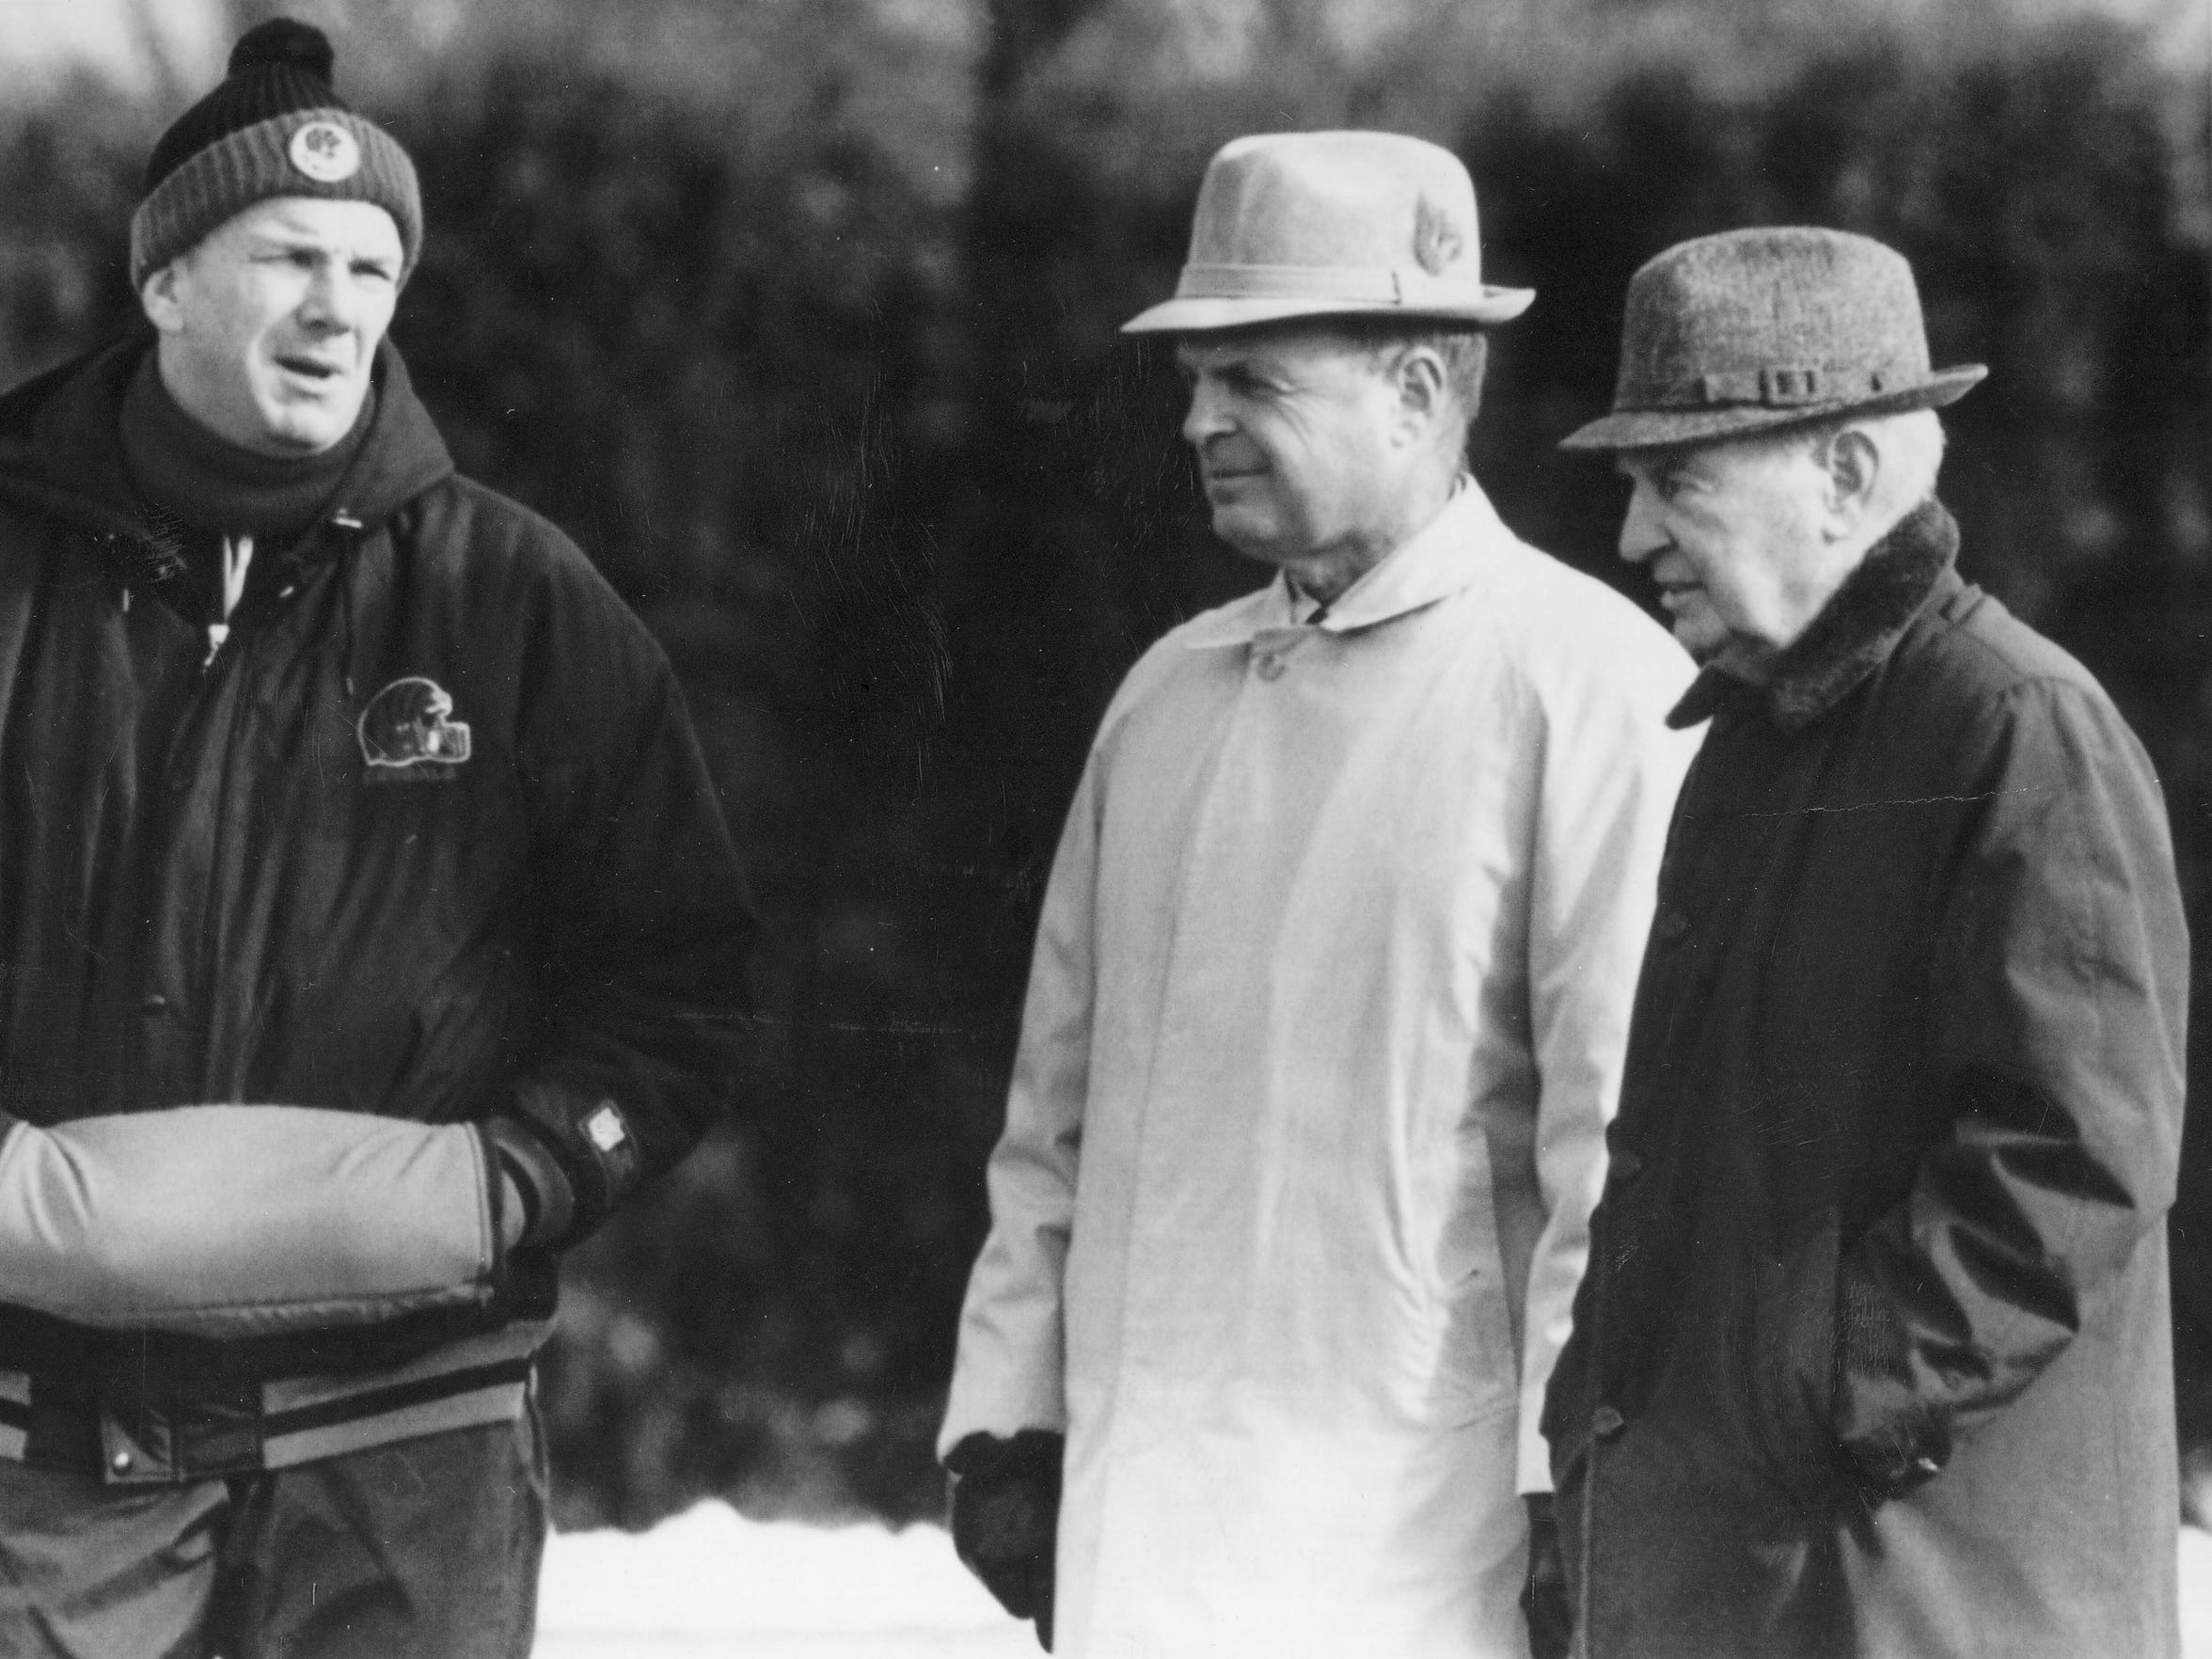 DECEMBER 13, 1989: Checking Progress - Cincinnati Bengals coach, Sam Wyche, talks with team executives, Mike Brown, center, and Paul Brown, during practice at Spinney Field in Cincinnati. Associated Press Scanned 6/12/2017